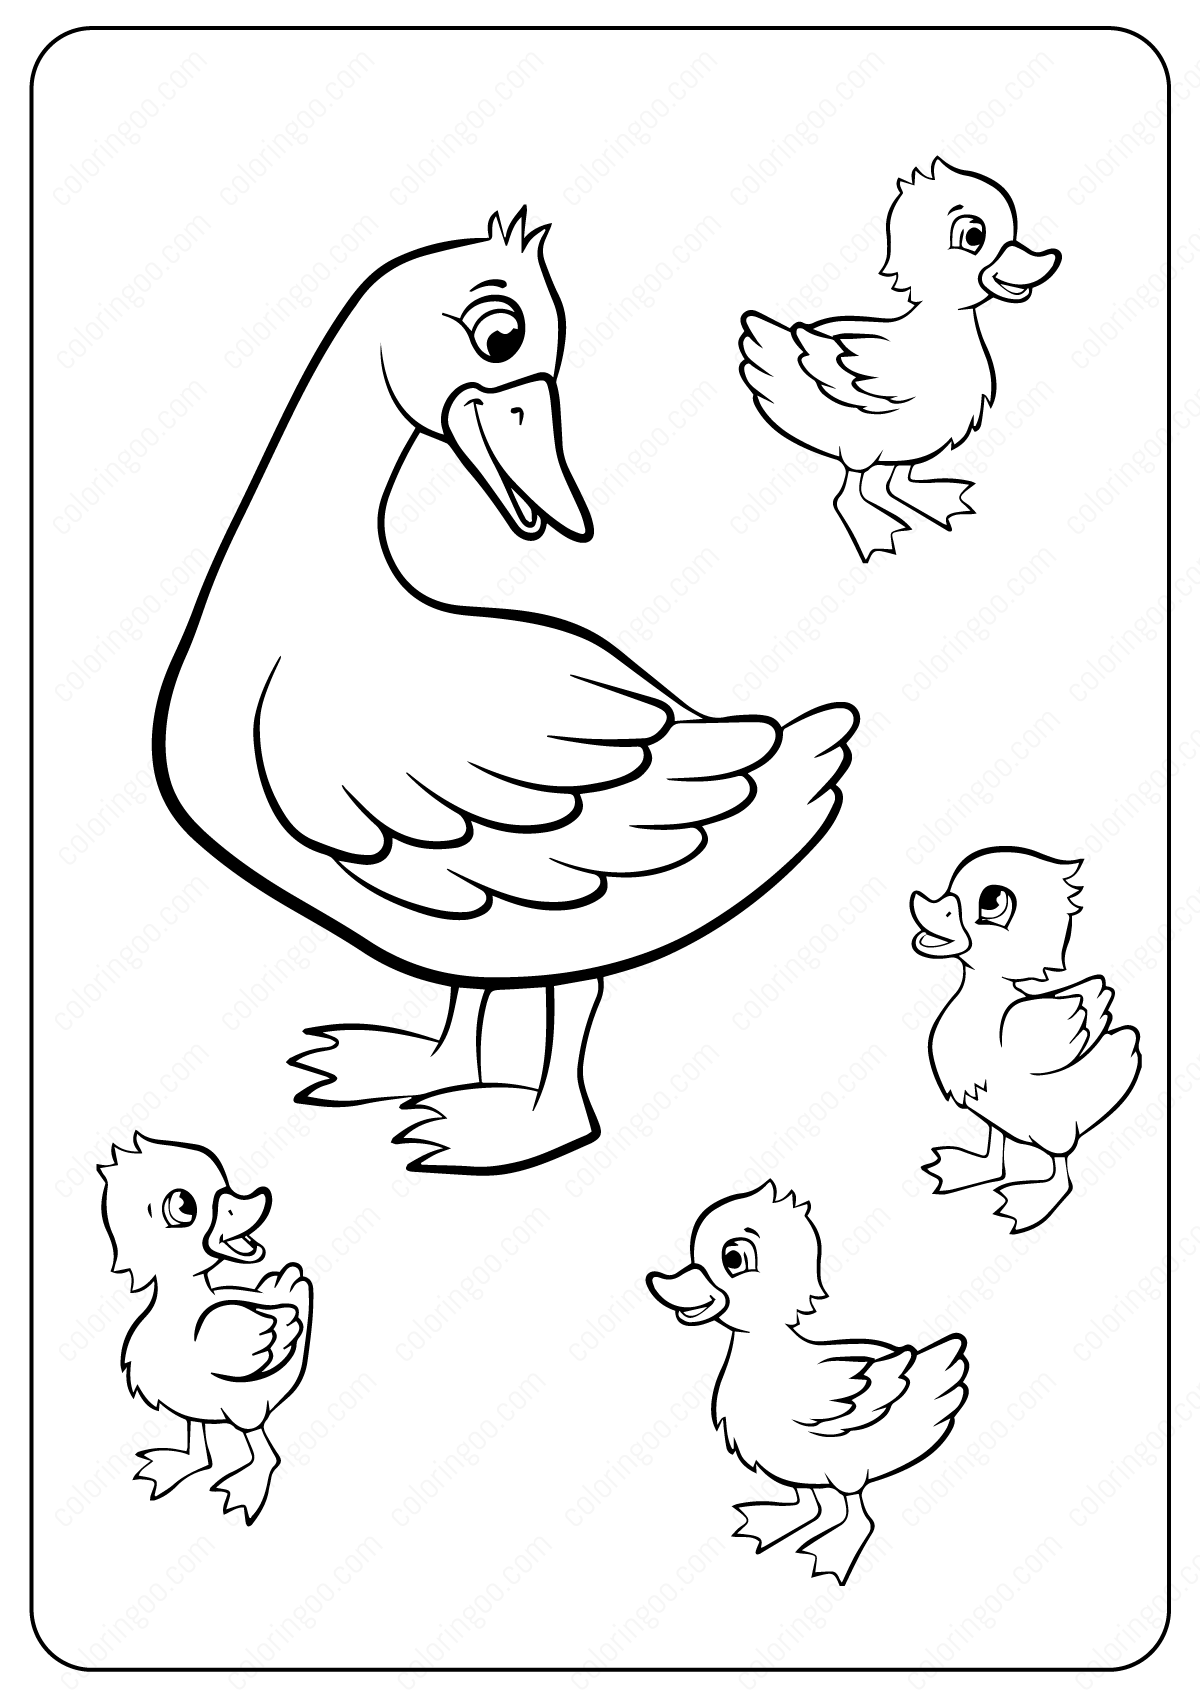 cartoon duck coloring pages picture of a cartoon duck clipartsco duck coloring cartoon pages